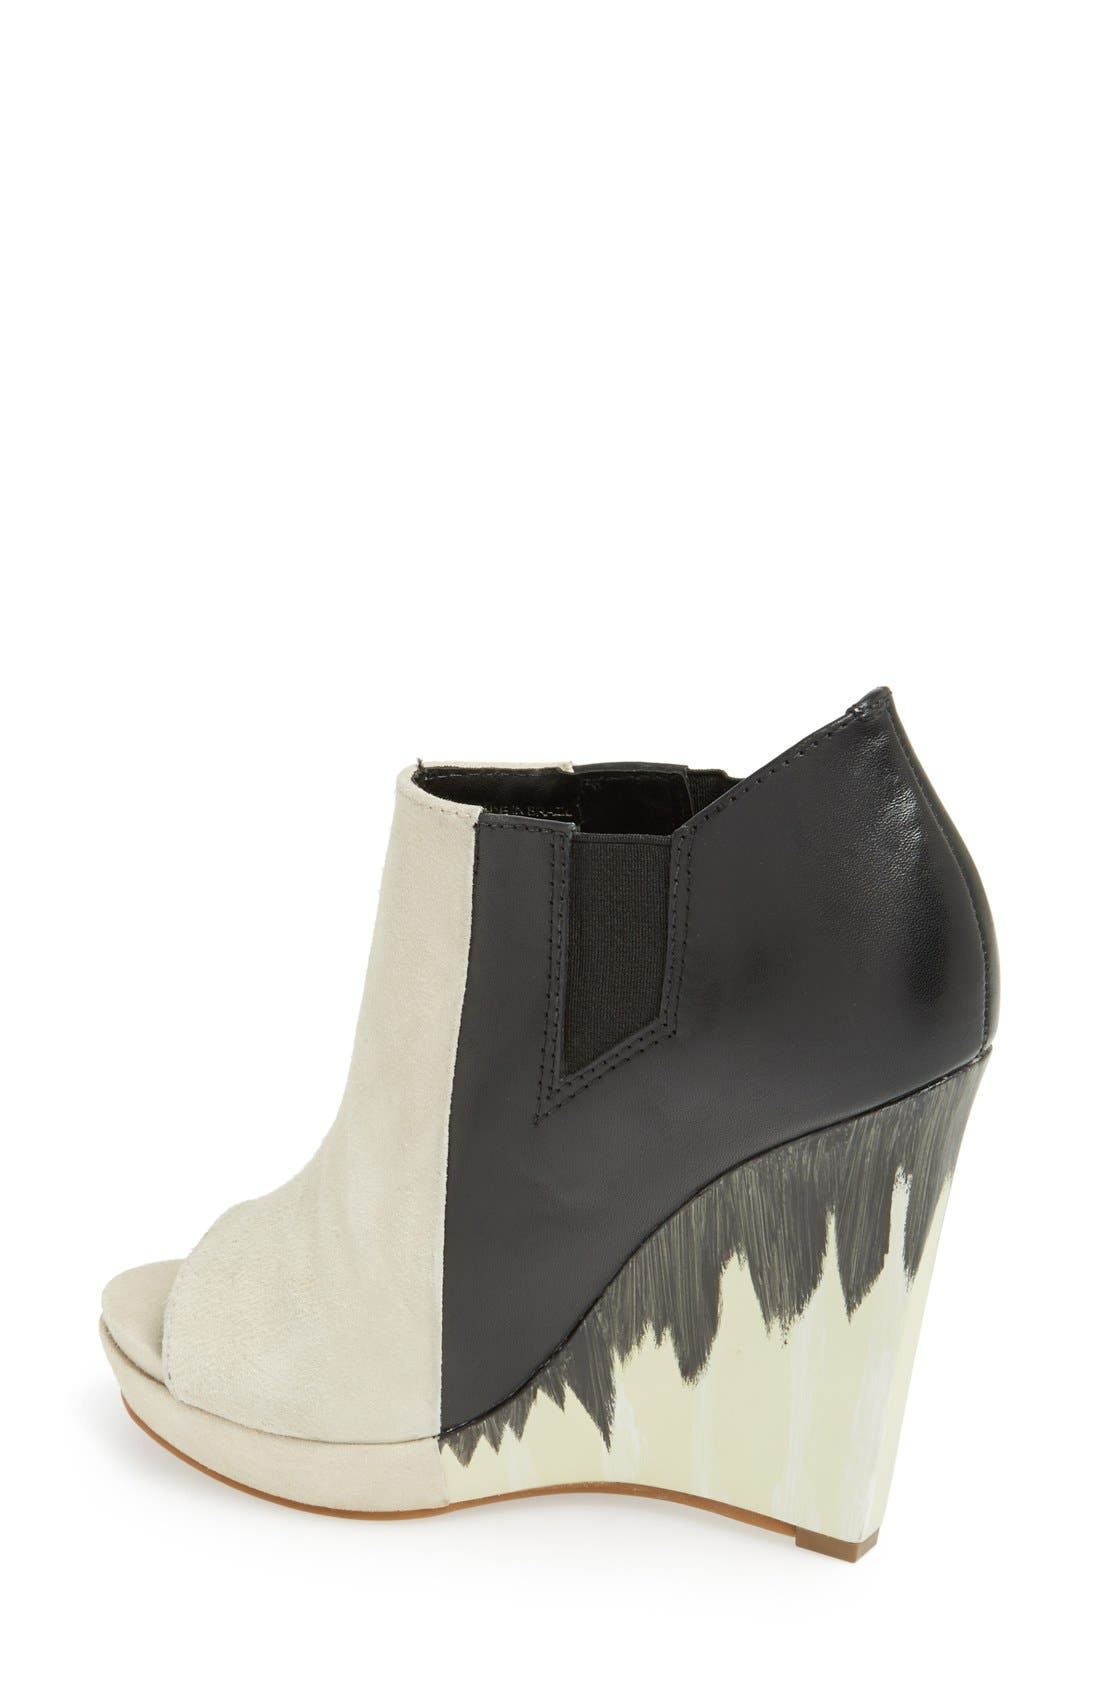 Alternate Image 2  - Derek Lam 10 Crosby 'Gerri' Leather & Suede Open Toe Wedge Bootie